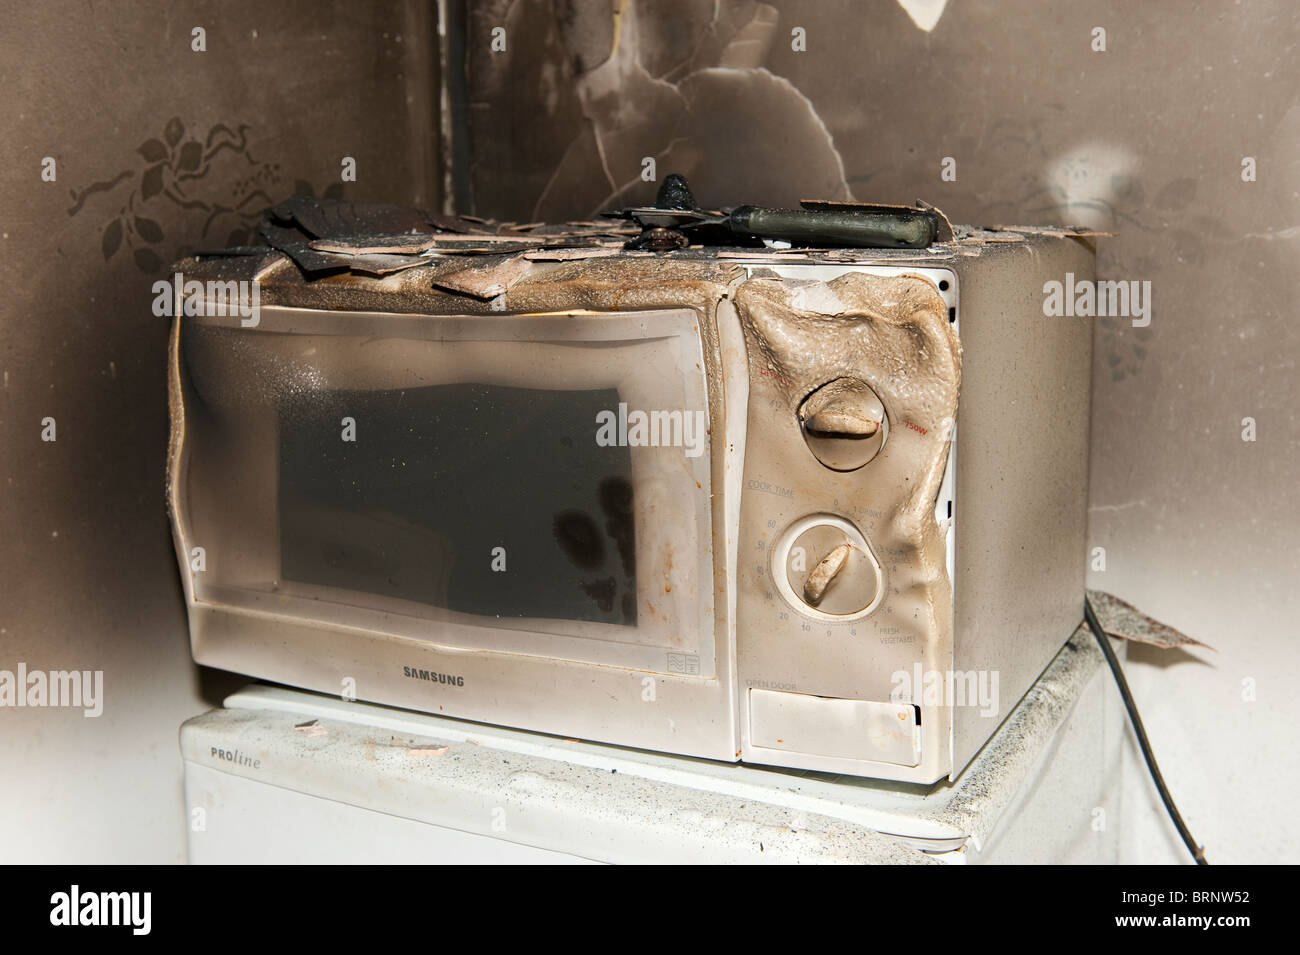 microwave fire stock photos amp microwave fire stock images